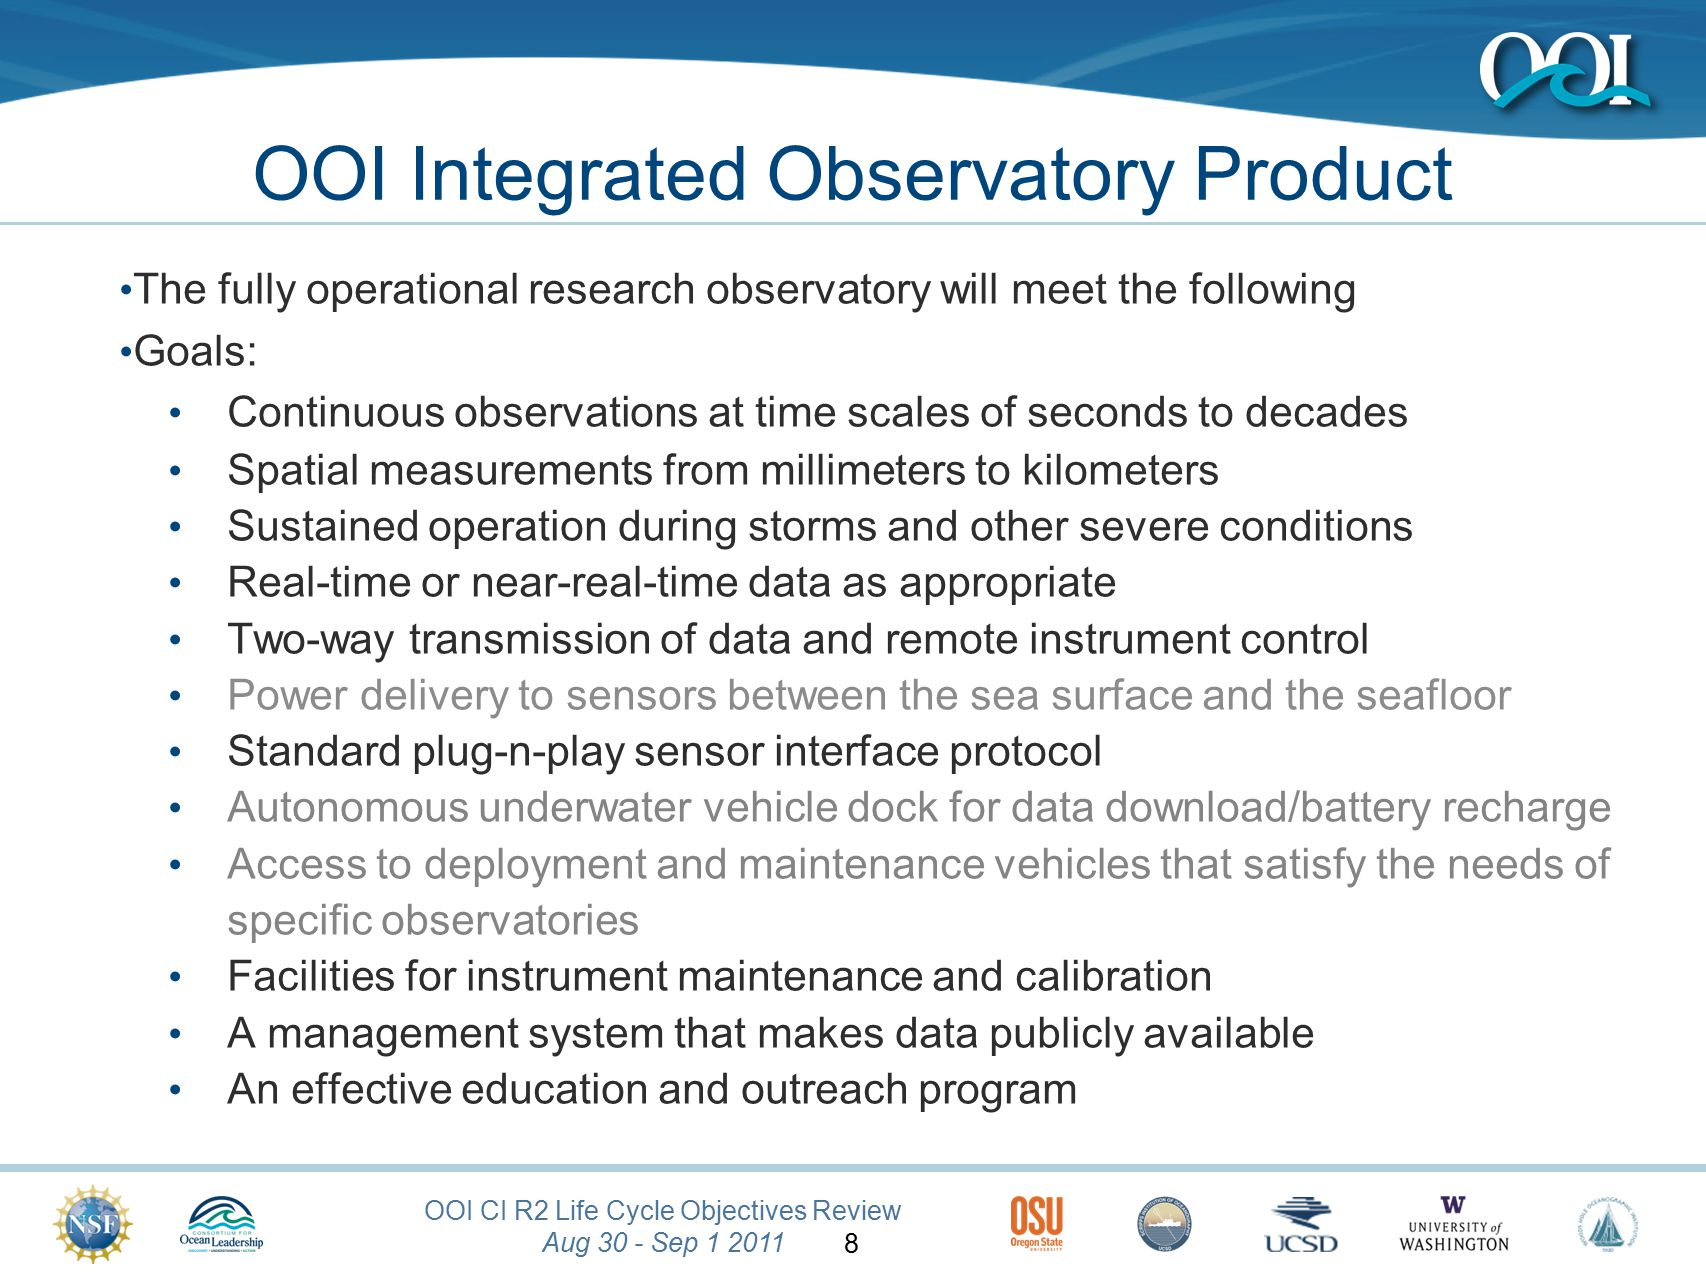 OOI CI R2 Life Cycle Objectives Review Aug 30 - Sep 1 2011 8 OOI Integrated Observatory Product The fully operational research observatory will meet the following Goals: Continuous observations at time scales of seconds to decades Spatial measurements from millimeters to kilometers Sustained operation during storms and other severe conditions Real-time or near-real-time data as appropriate Two-way transmission of data and remote instrument control Power delivery to sensors between the sea surface and the seafloor Standard plug-n-play sensor interface protocol Autonomous underwater vehicle dock for data download/battery recharge Access to deployment and maintenance vehicles that satisfy the needs of specific observatories Facilities for instrument maintenance and calibration A management system that makes data publicly available An effective education and outreach program